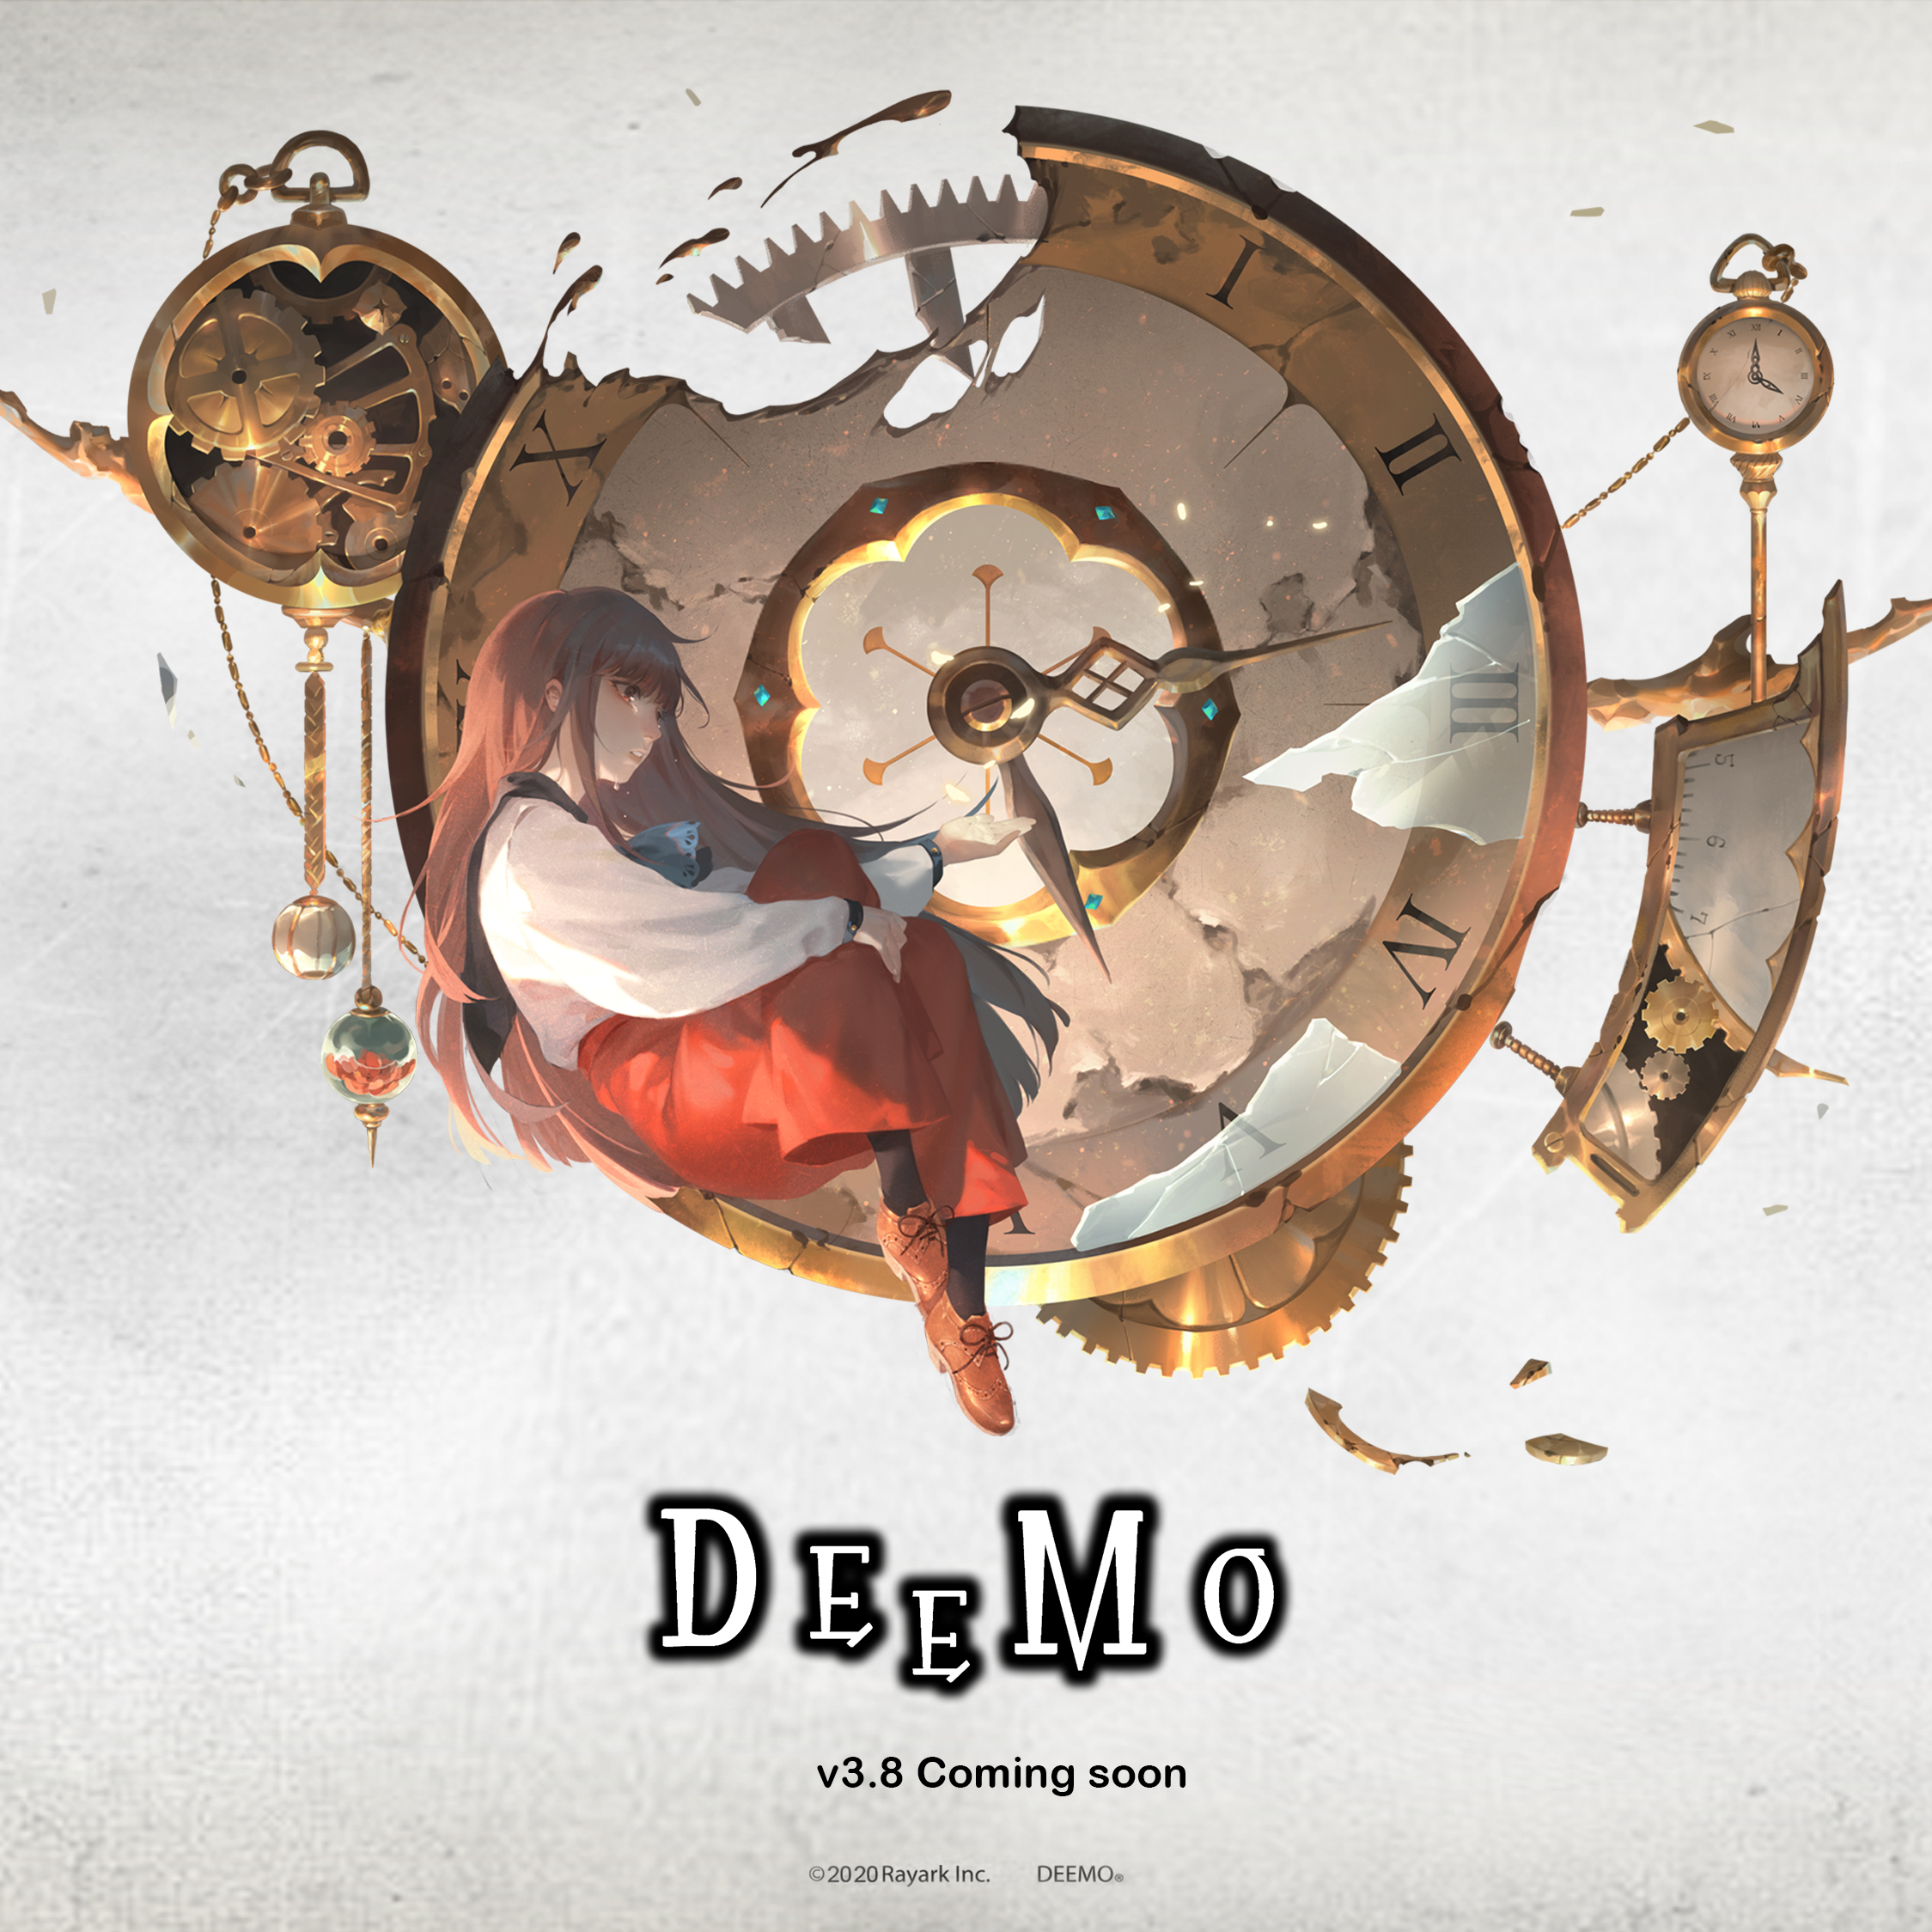 DEEMO v3.8 Coming soon